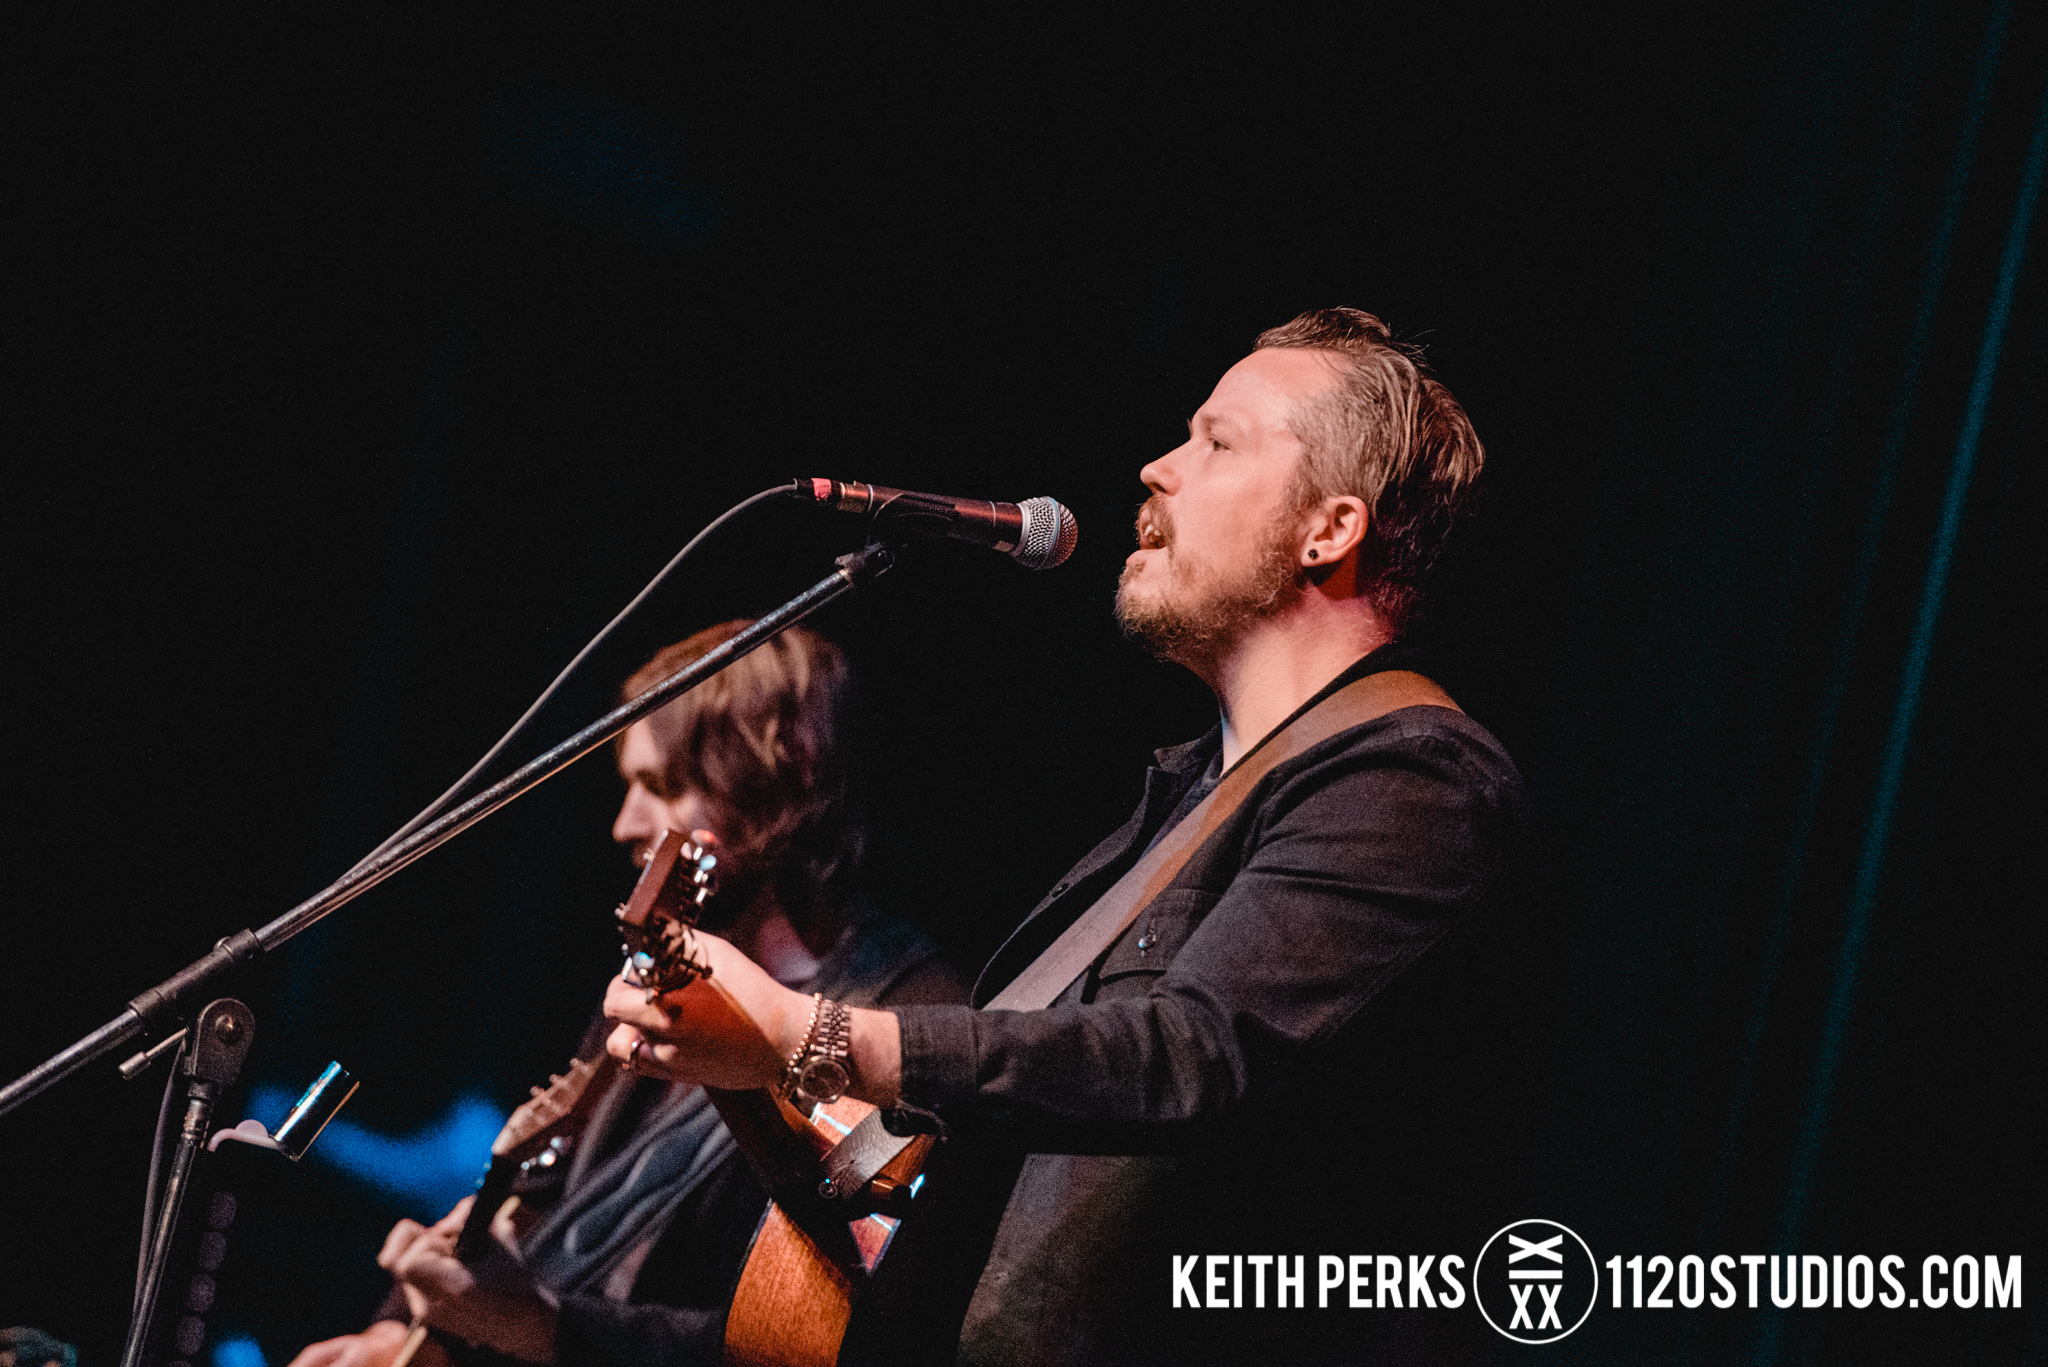 JASON ISBELL AT KIRBY CENTER WITH KEVIN MORBY